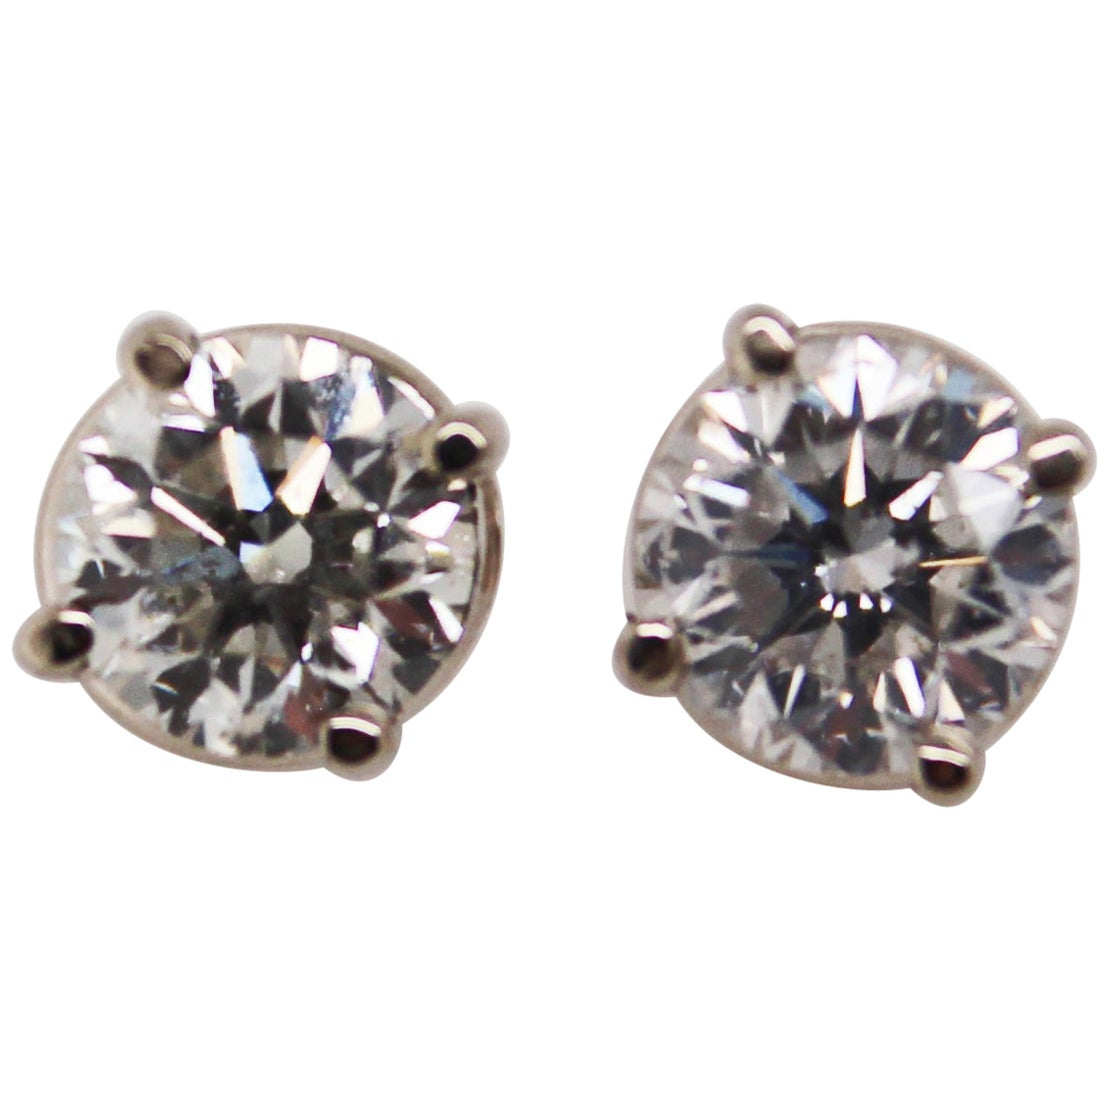 14 Karat White Gold Diamond Stud Earrings